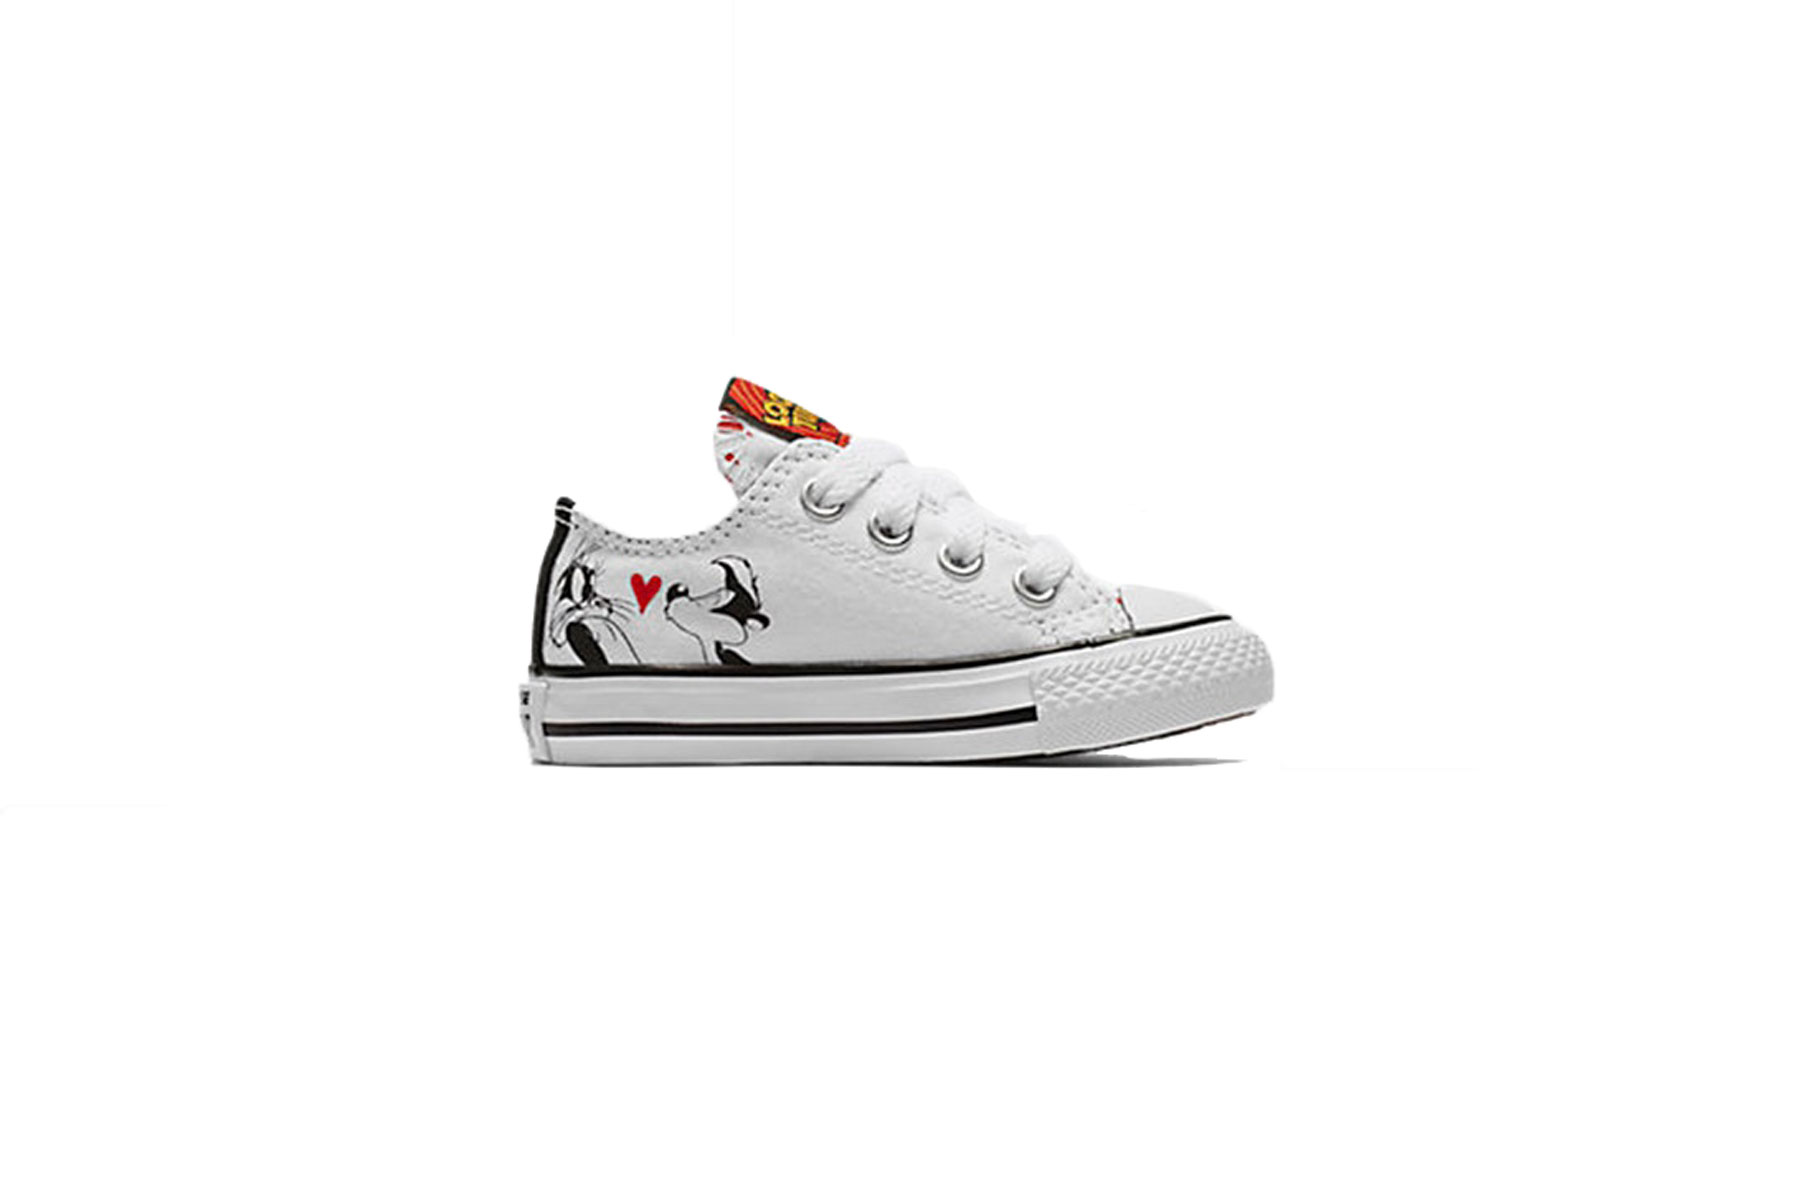 valentine's day gift guide kids sneaker edition hello kitty puma nike freshly picked converse dr martens skechers looney tunes vans authentic